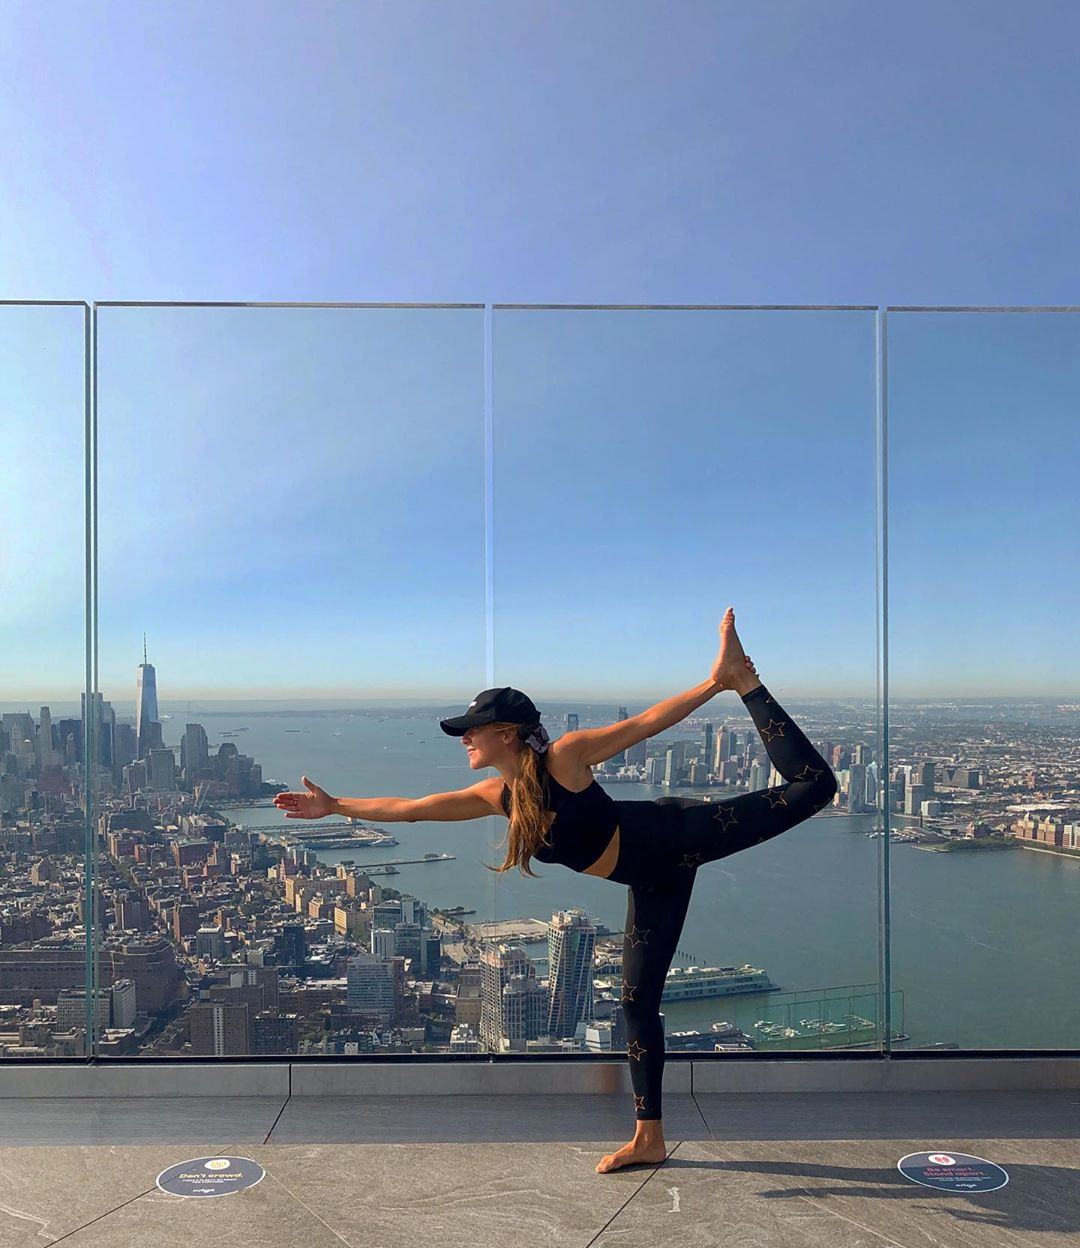 <woman doing yoga pose on edge observation deck with hudson river and nyc skyline in background